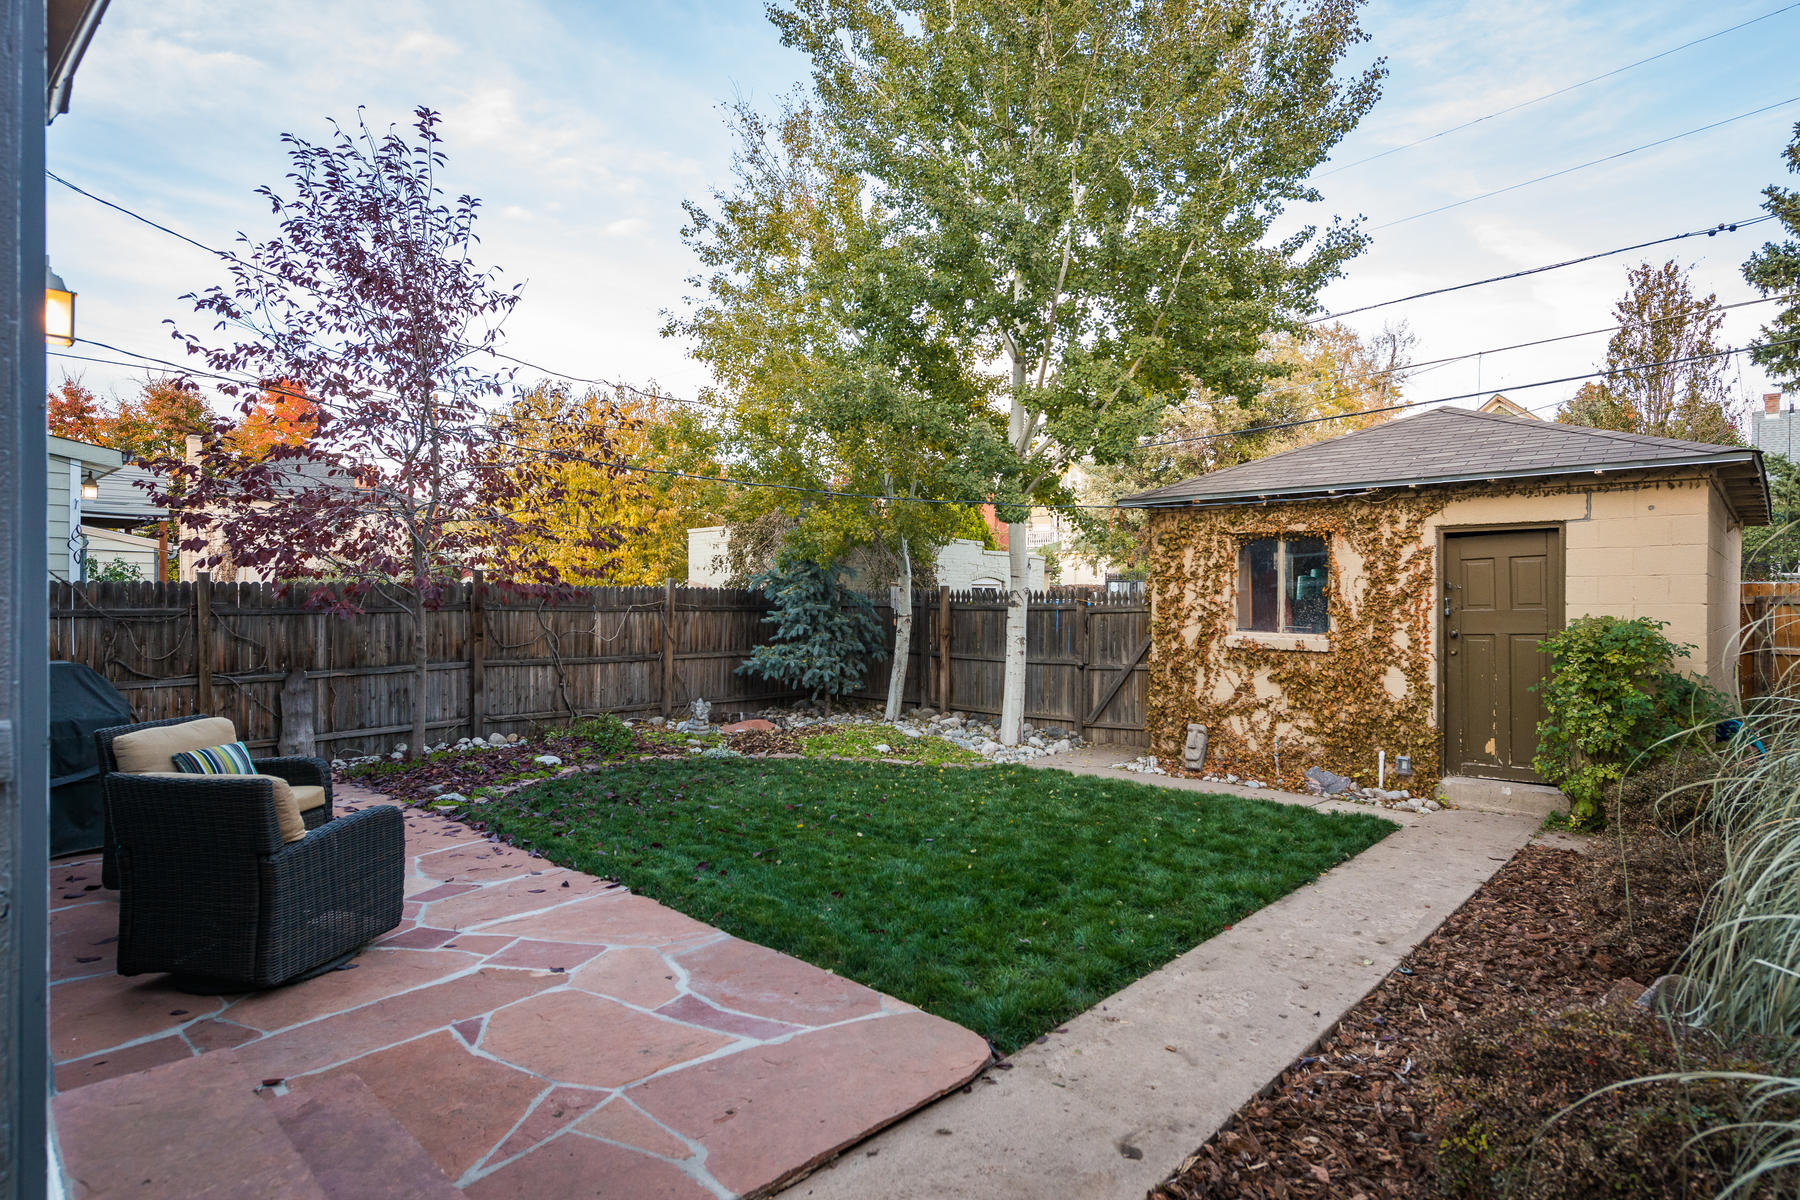 Additional photo for property listing at Fantastic Location! 2230 North Williams Street Denver, Colorado 80205 United States